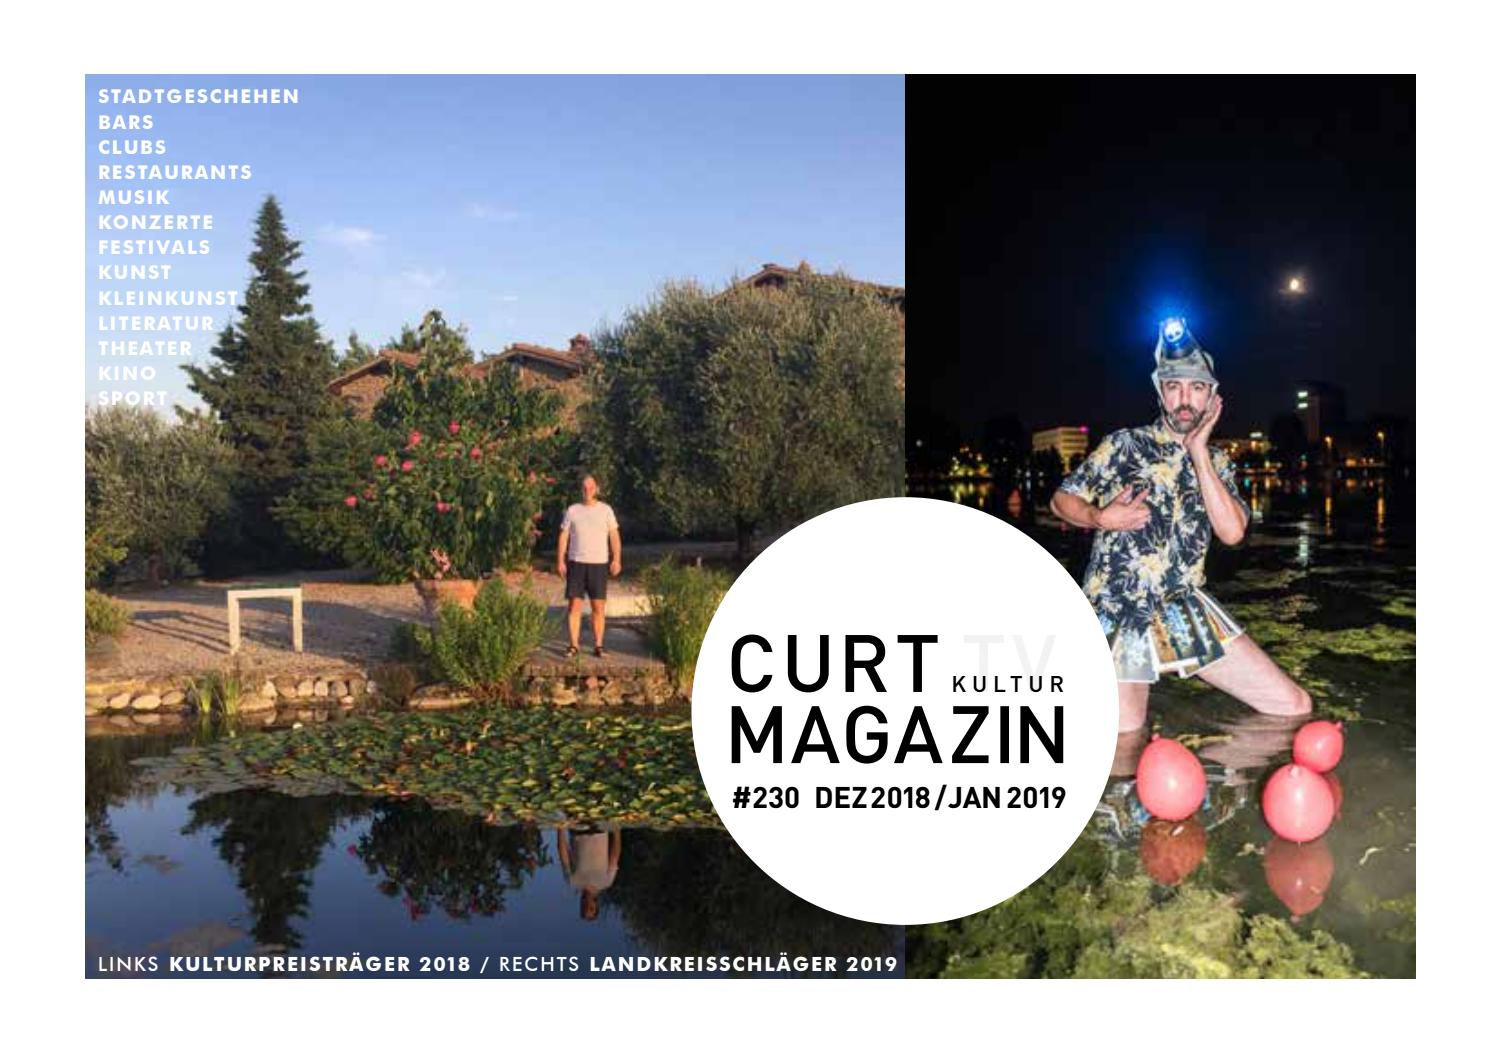 curt NFE #230 Dez 2018 Jan 2019 by curt Magazin + KURTi